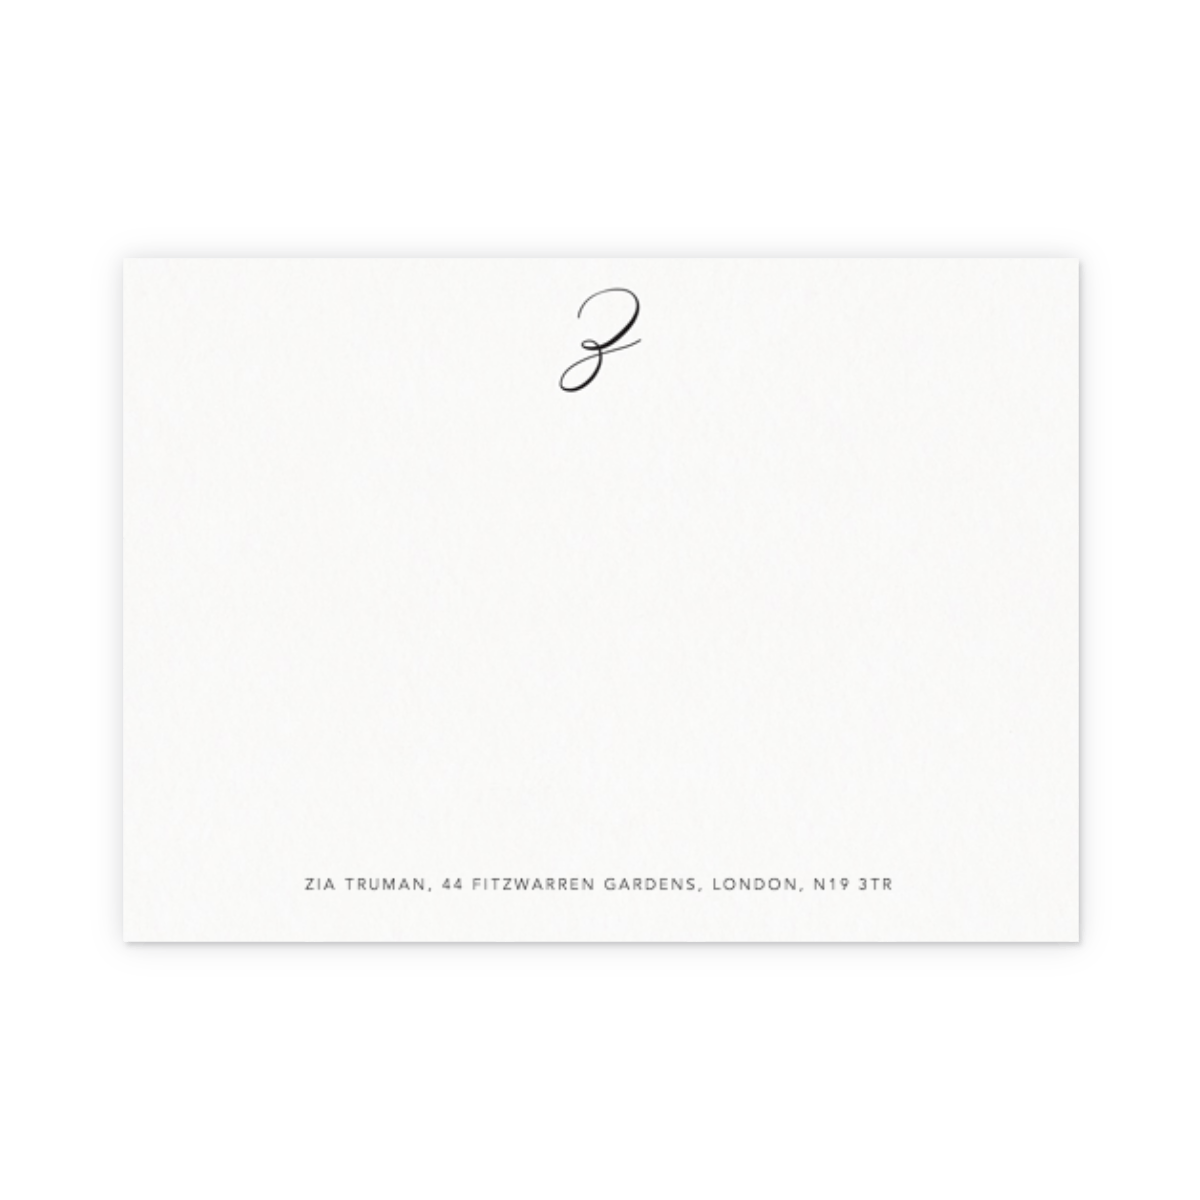 Https%3a%2f%2fwww.papier.com%2fproduct image%2f48541%2f10%2fmonogram smooth a z 11940 front 1539079262.png?ixlib=rb 1.1